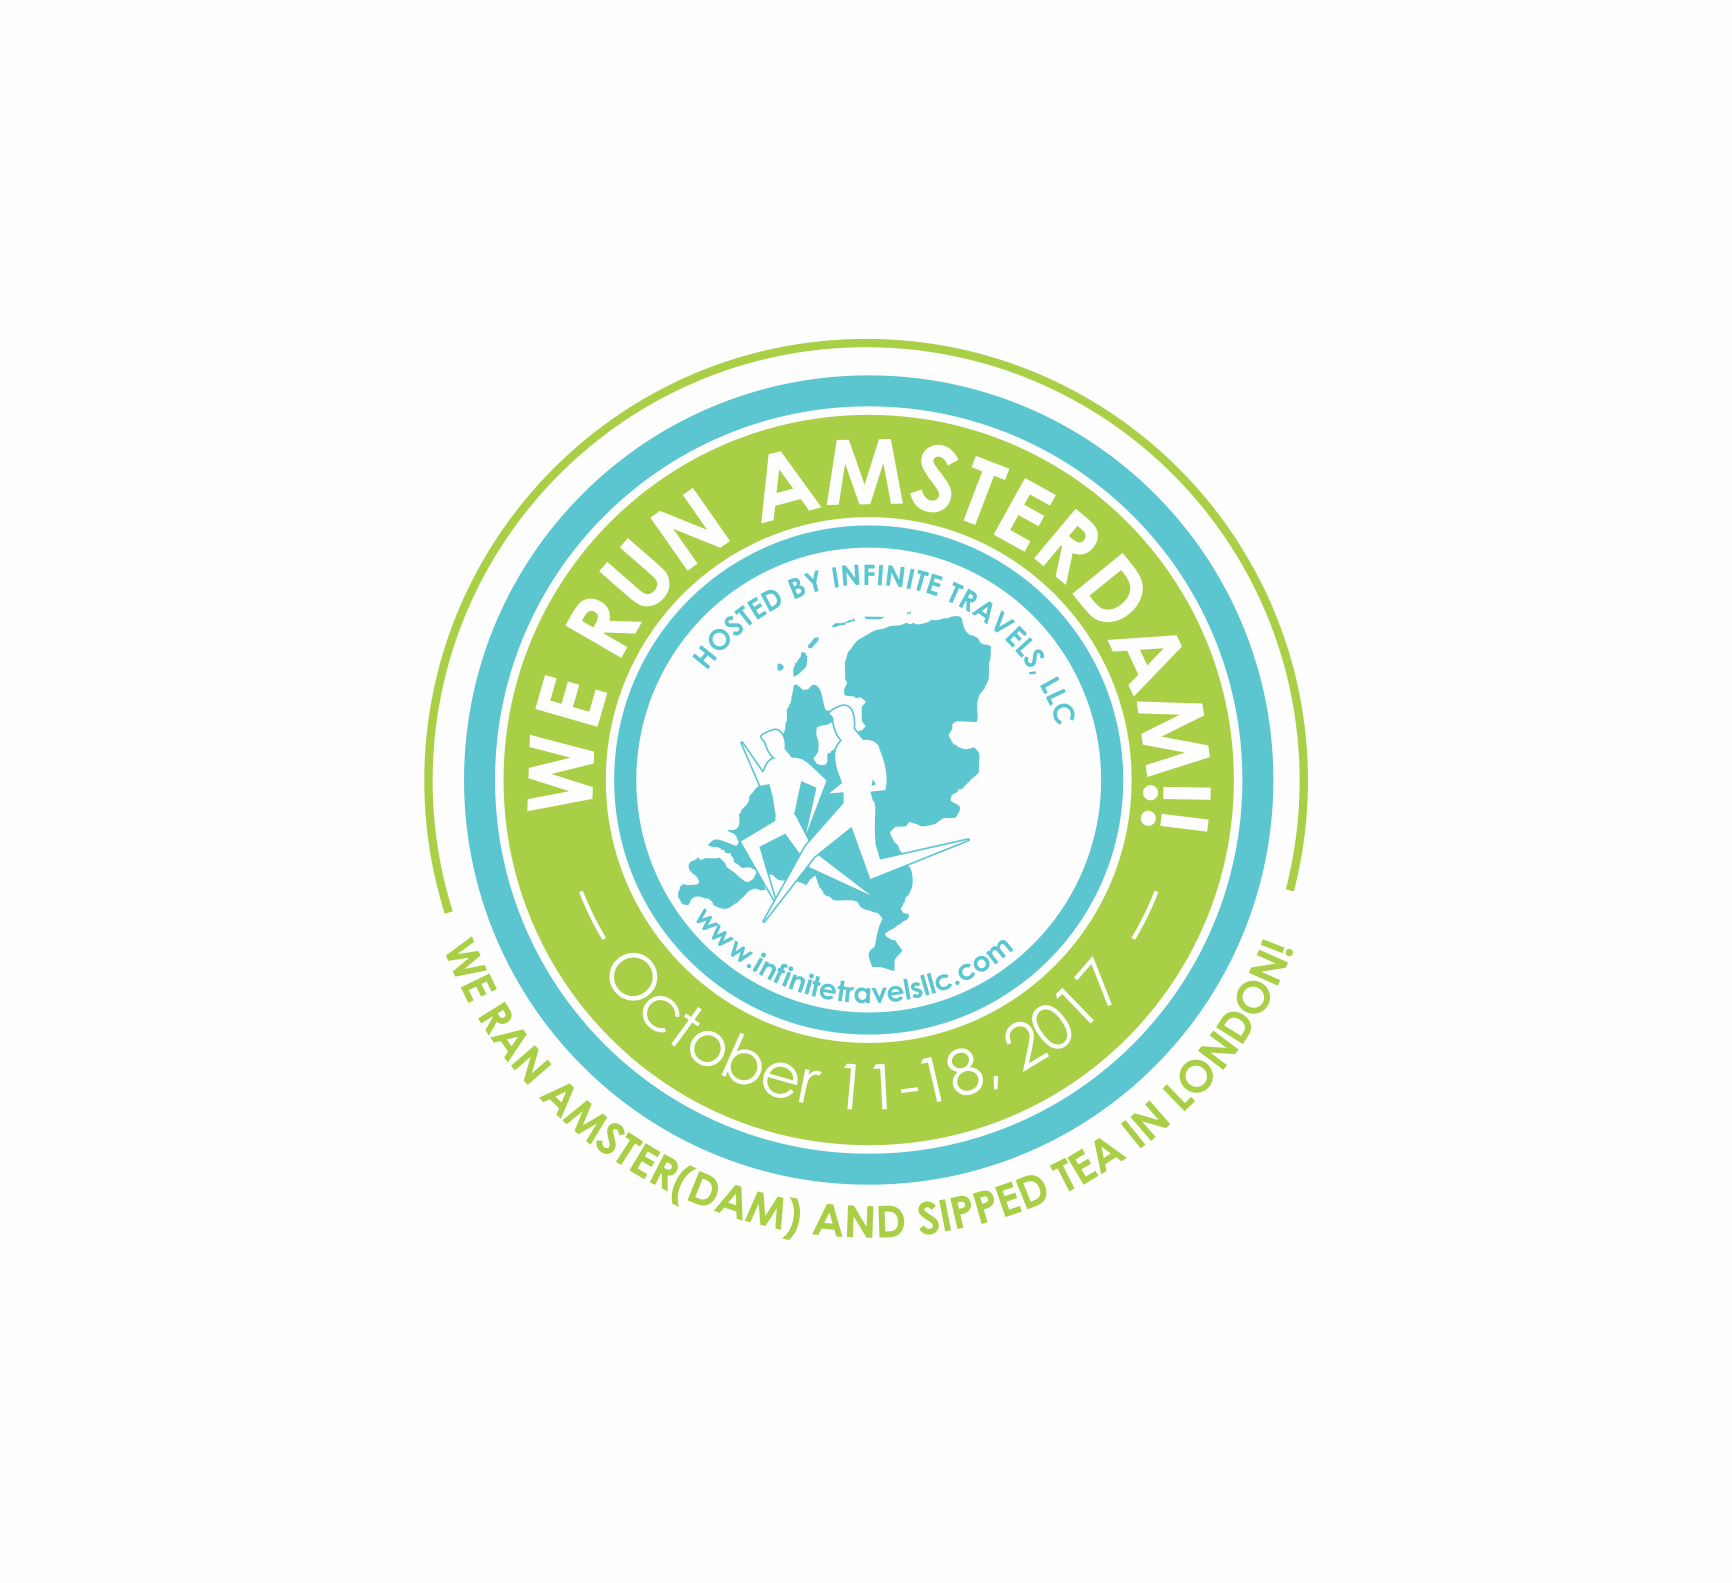 Logo for a running group traveling to Amsterdam and London  - Travel Logo